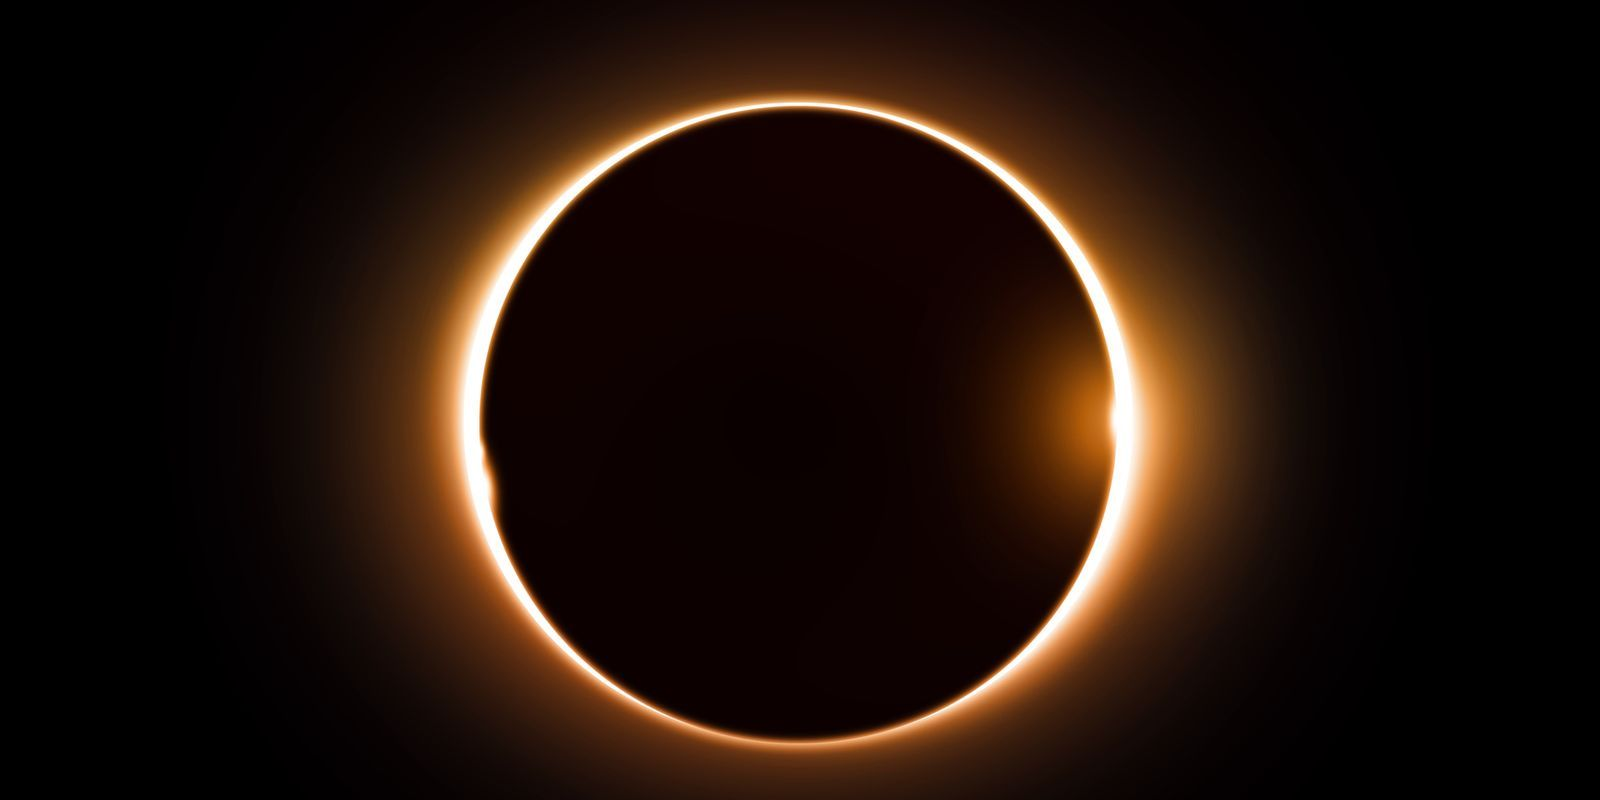 636371956180466197-solar-eclipse.jpg